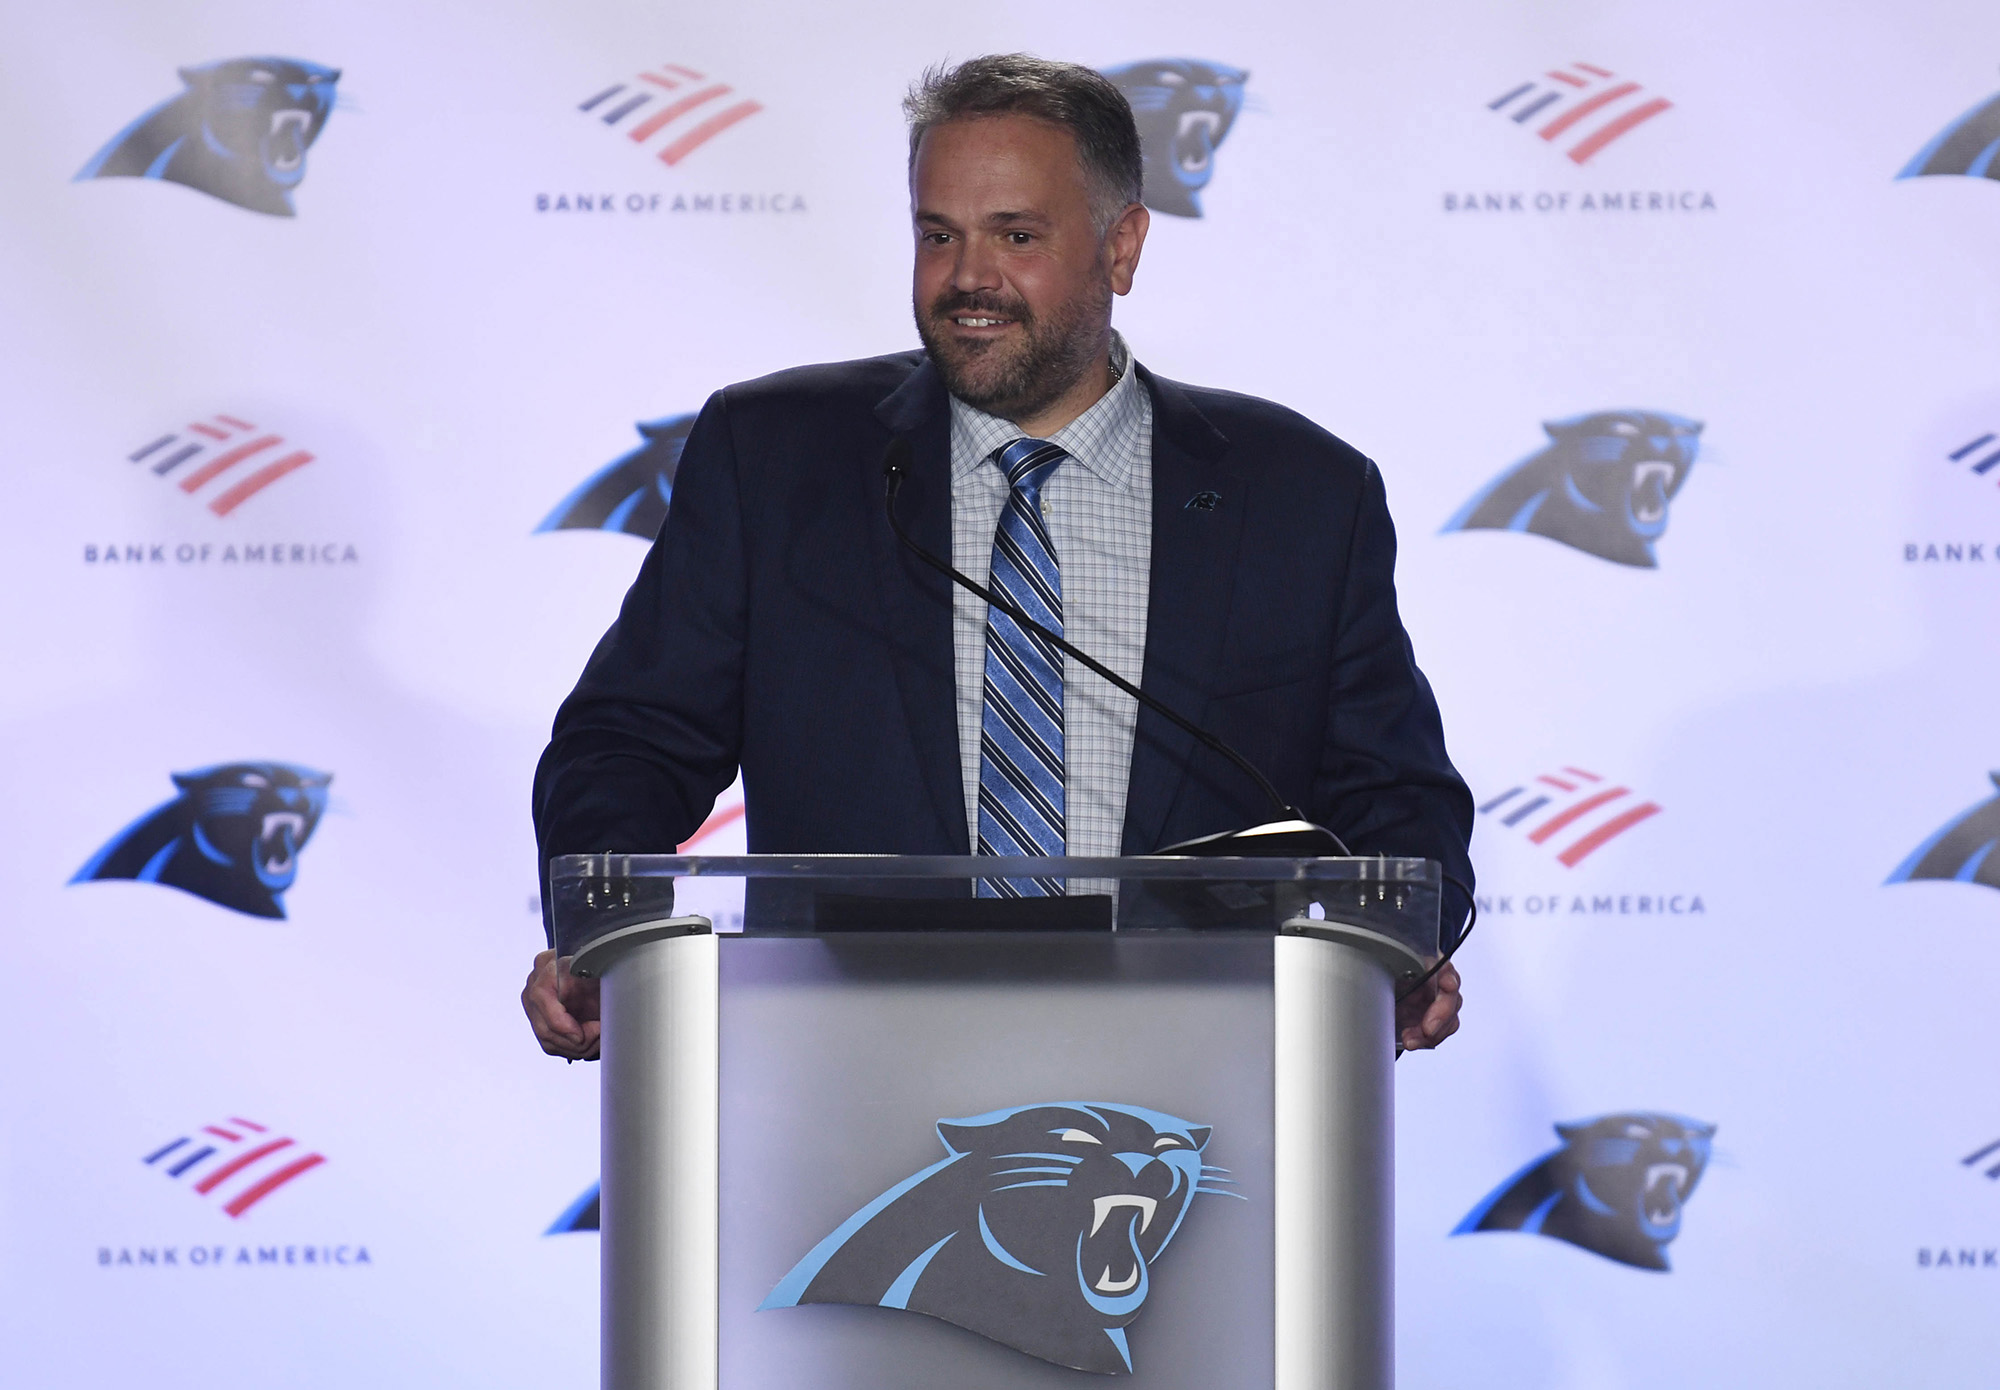 Phil Snow is mum on what the Panthers defense will look like, but his history has clues